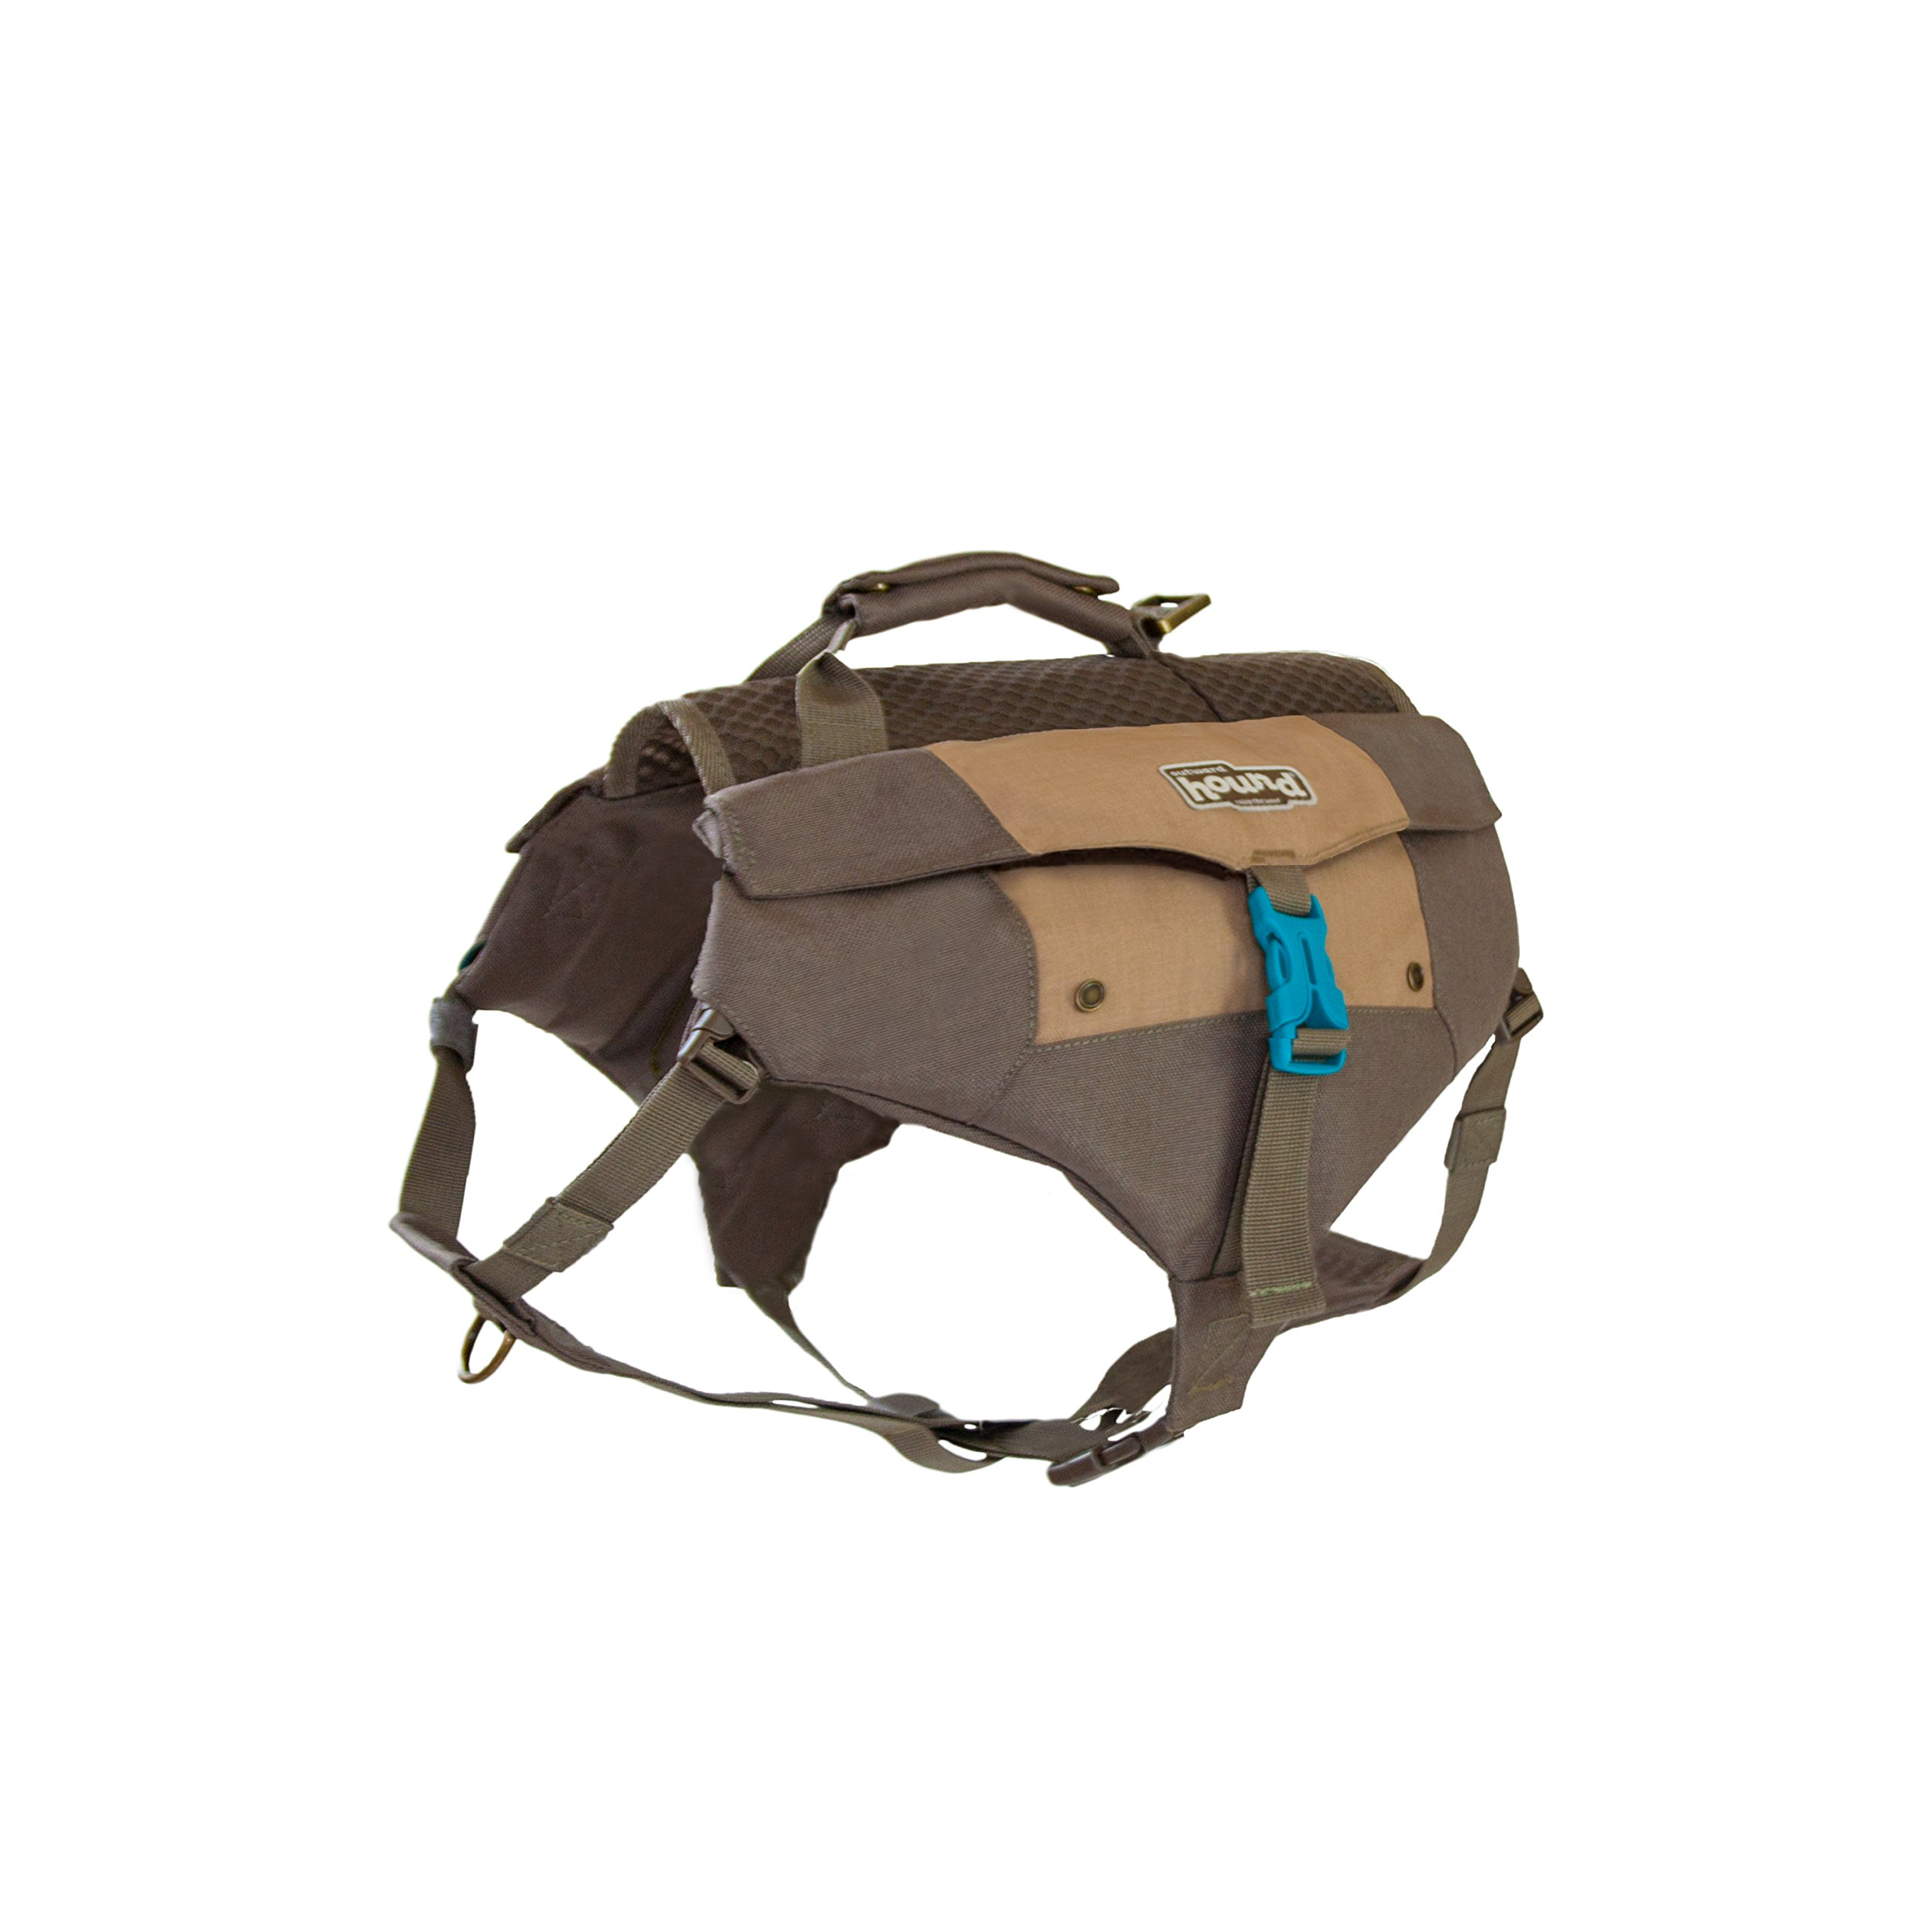 Denver Urban Pack Lightweight Urban Hiking Backpack for Dogs by Outward Hound, Small/Medium by Outward Hound